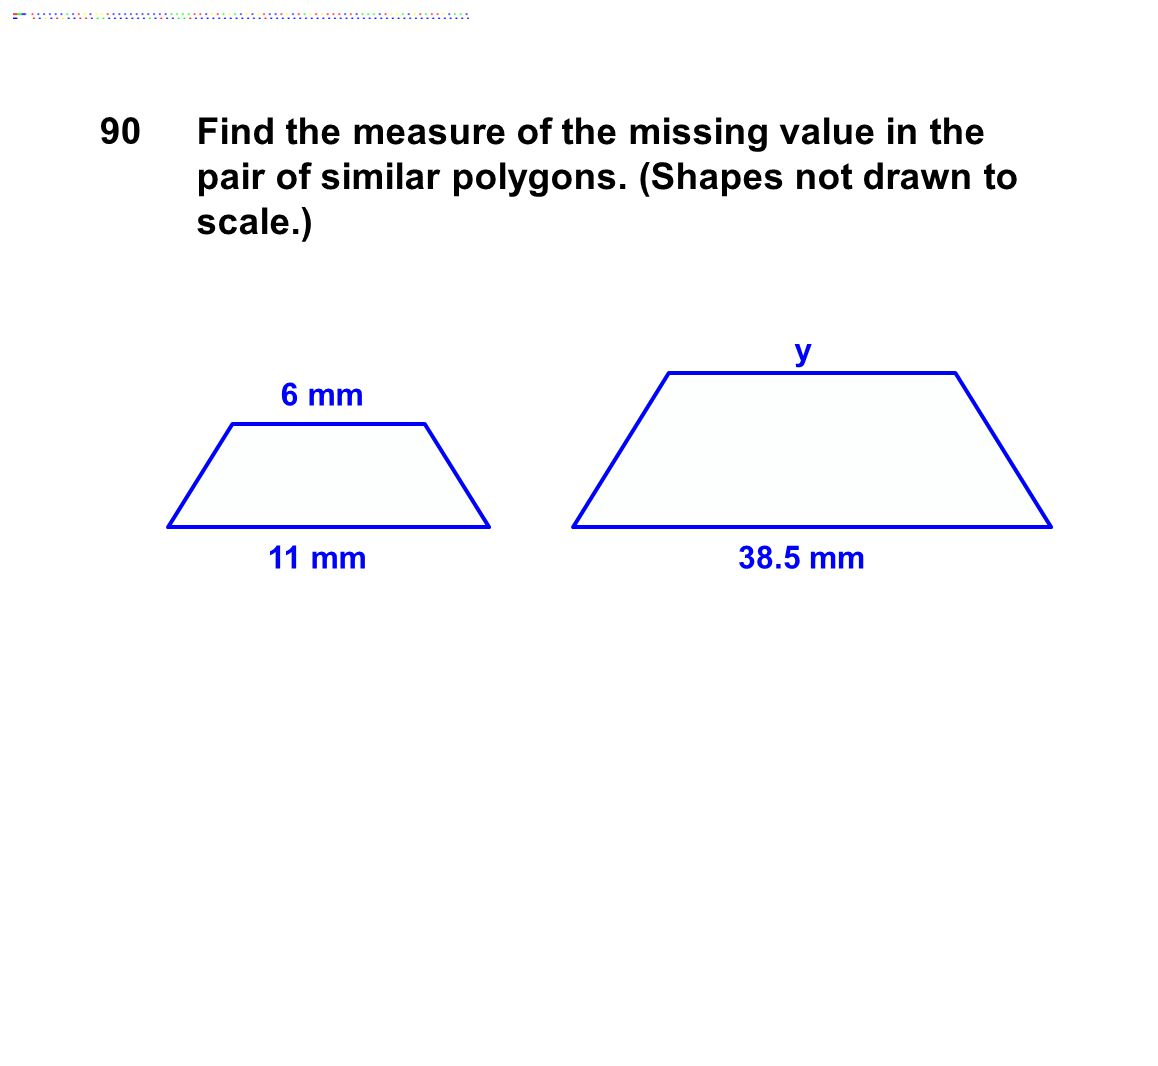 90 Find the measure of the missing value in the pair of similar polygons. (Shapes not drawn to scale.)